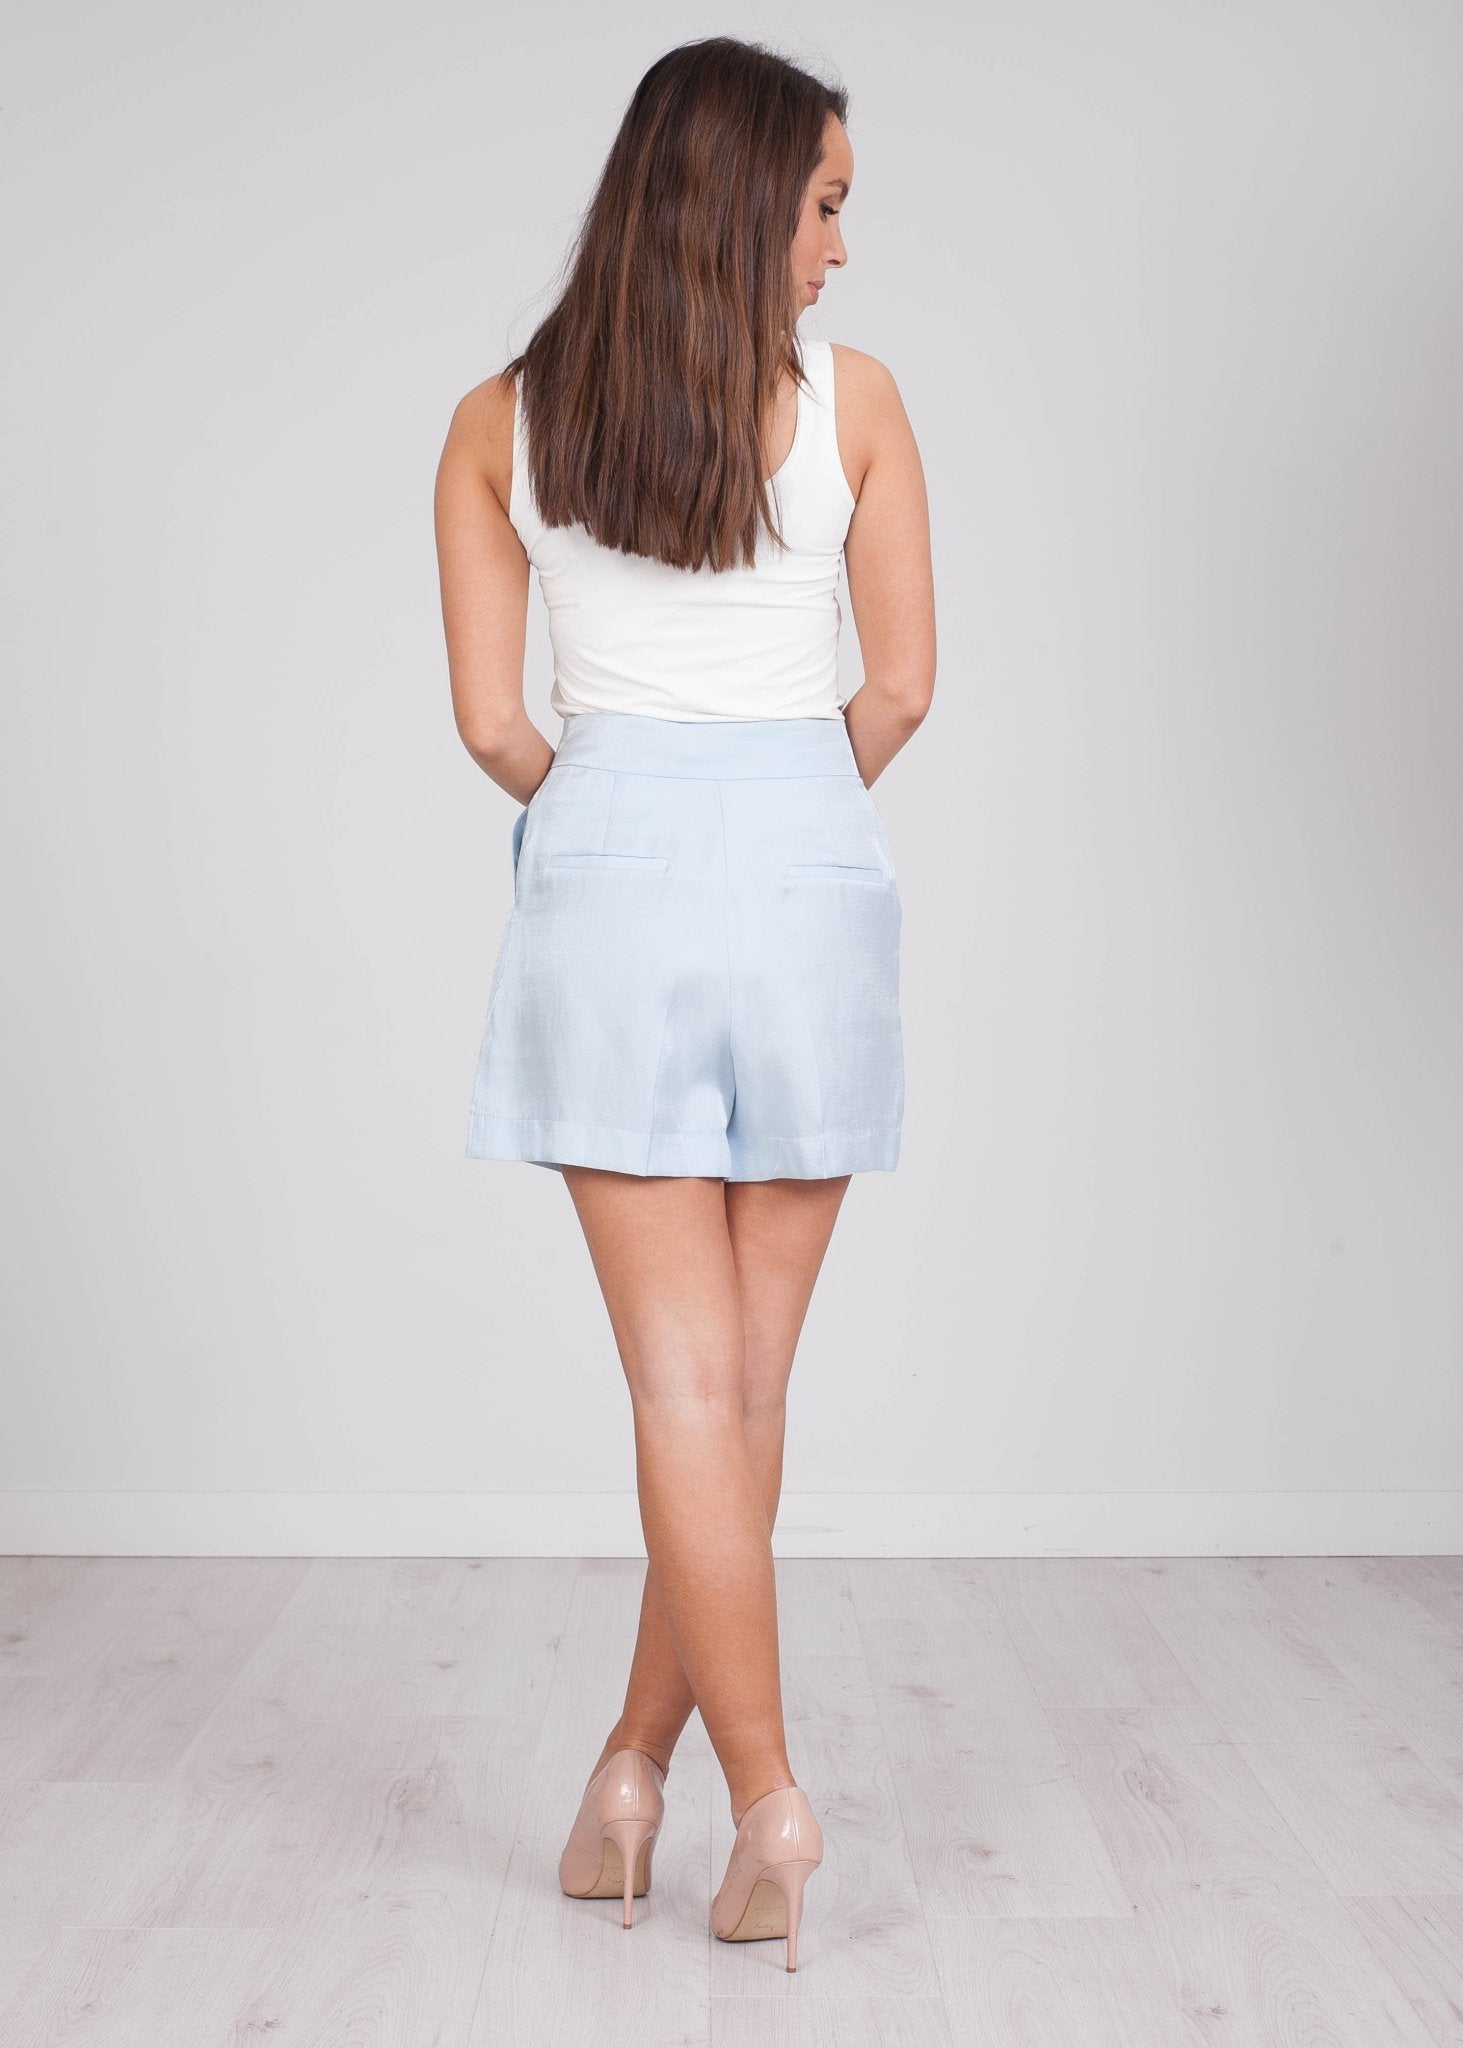 Savannah Baby Blue Shorts - The Walk in Wardrobe